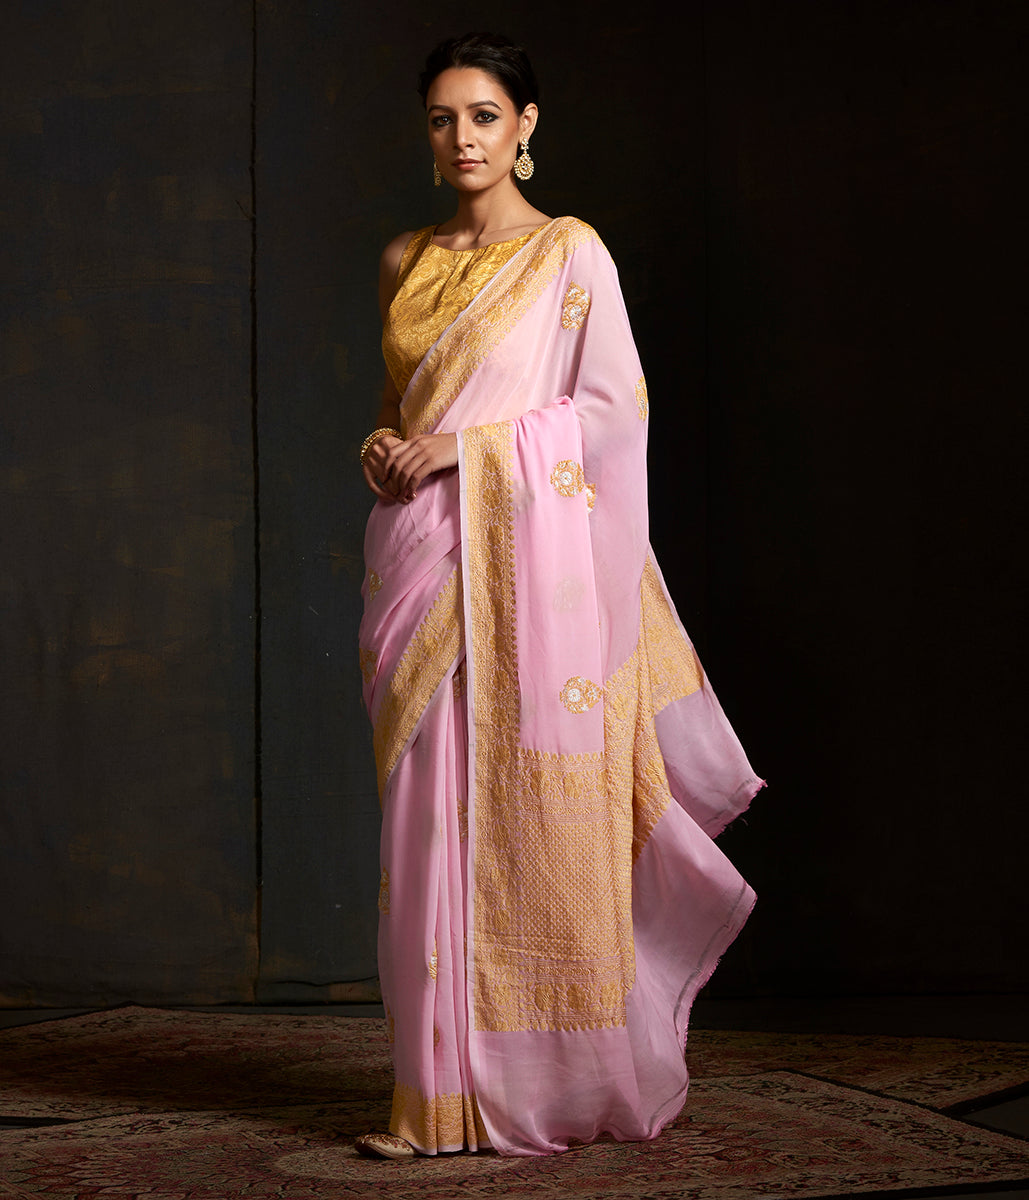 Soft pink banarasi georgette saree with kadhwa boota in gold and silver zari